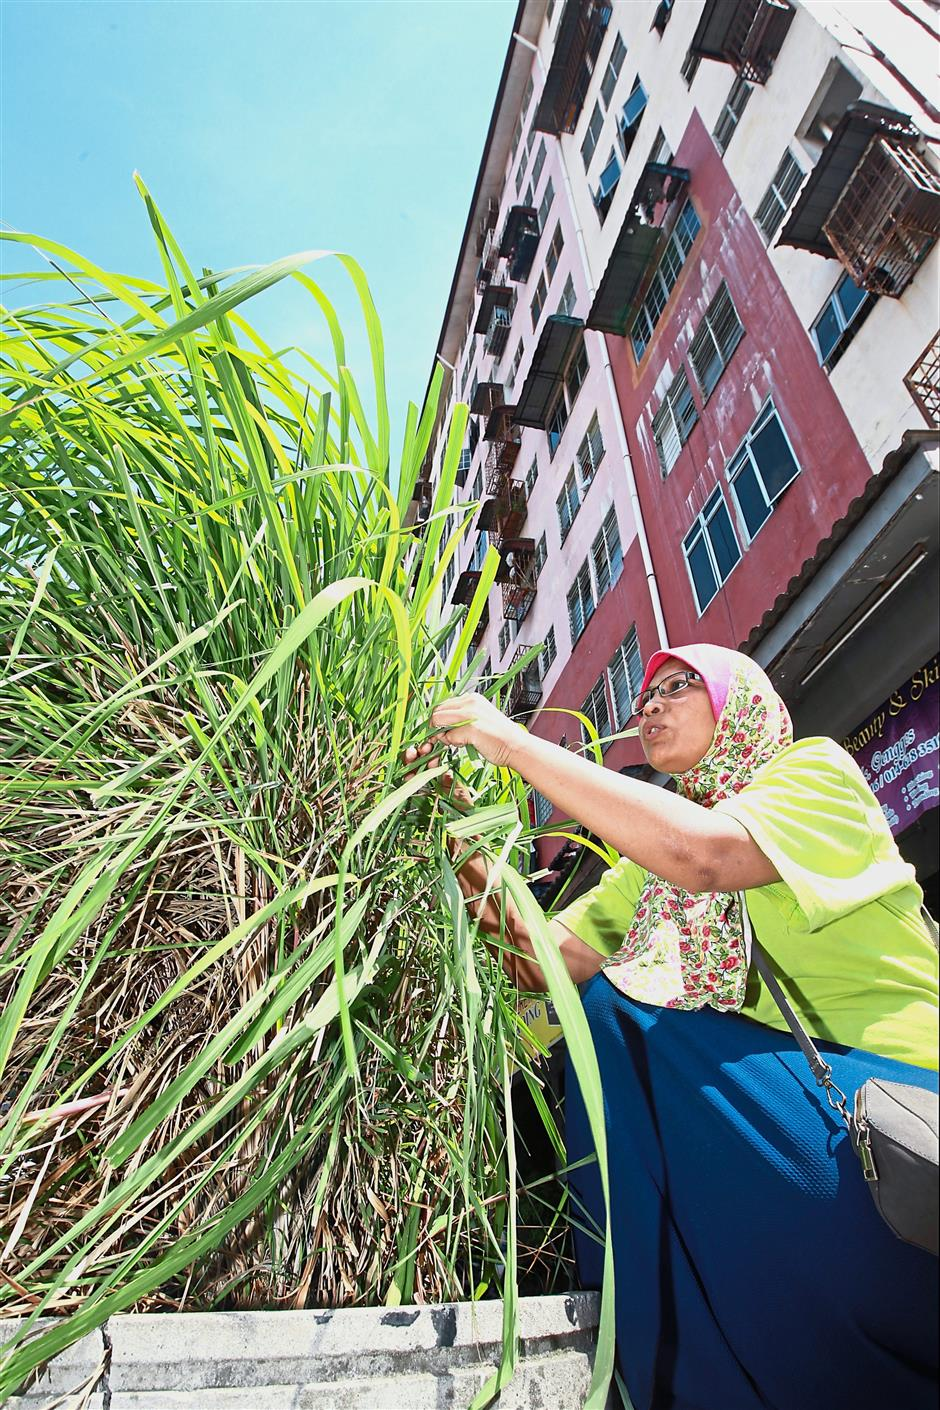 Residents in Desa Mentari block 1, Petaling Jaya will be taking their gardening to the next level with the community gardening project. At present, residents convert small spaces to plant herbs.